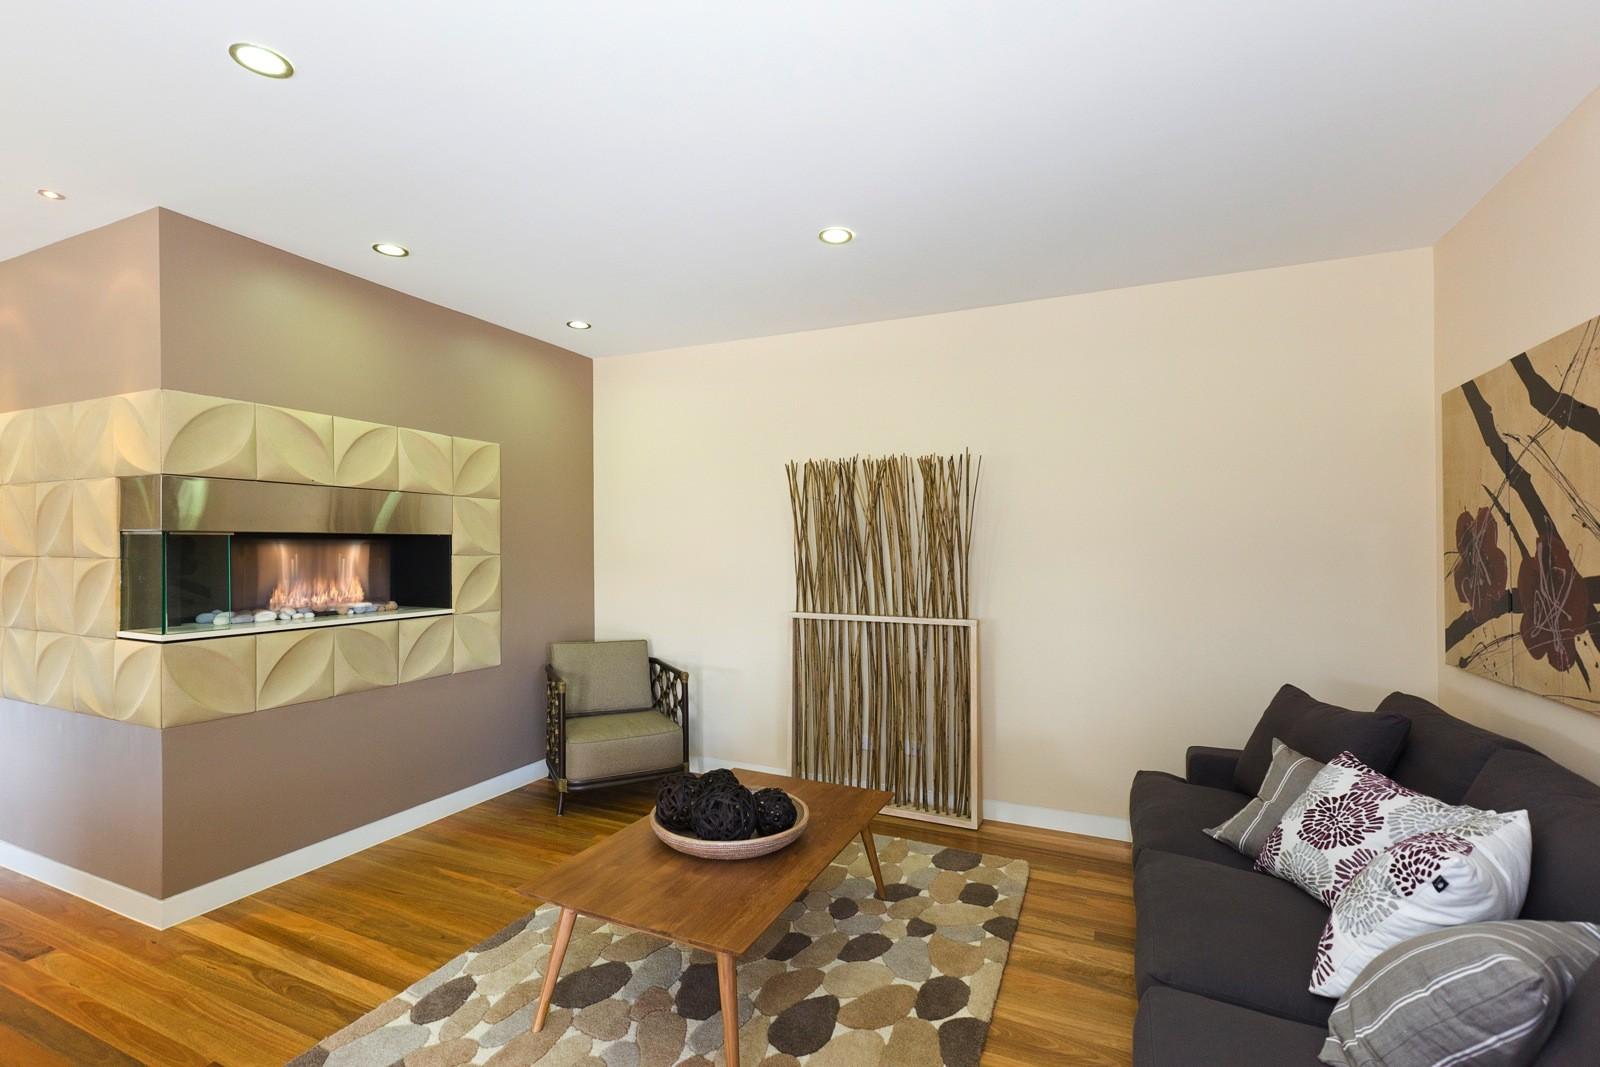 Alkira-Homes-Display-home-with-modern-fireplace-setting1